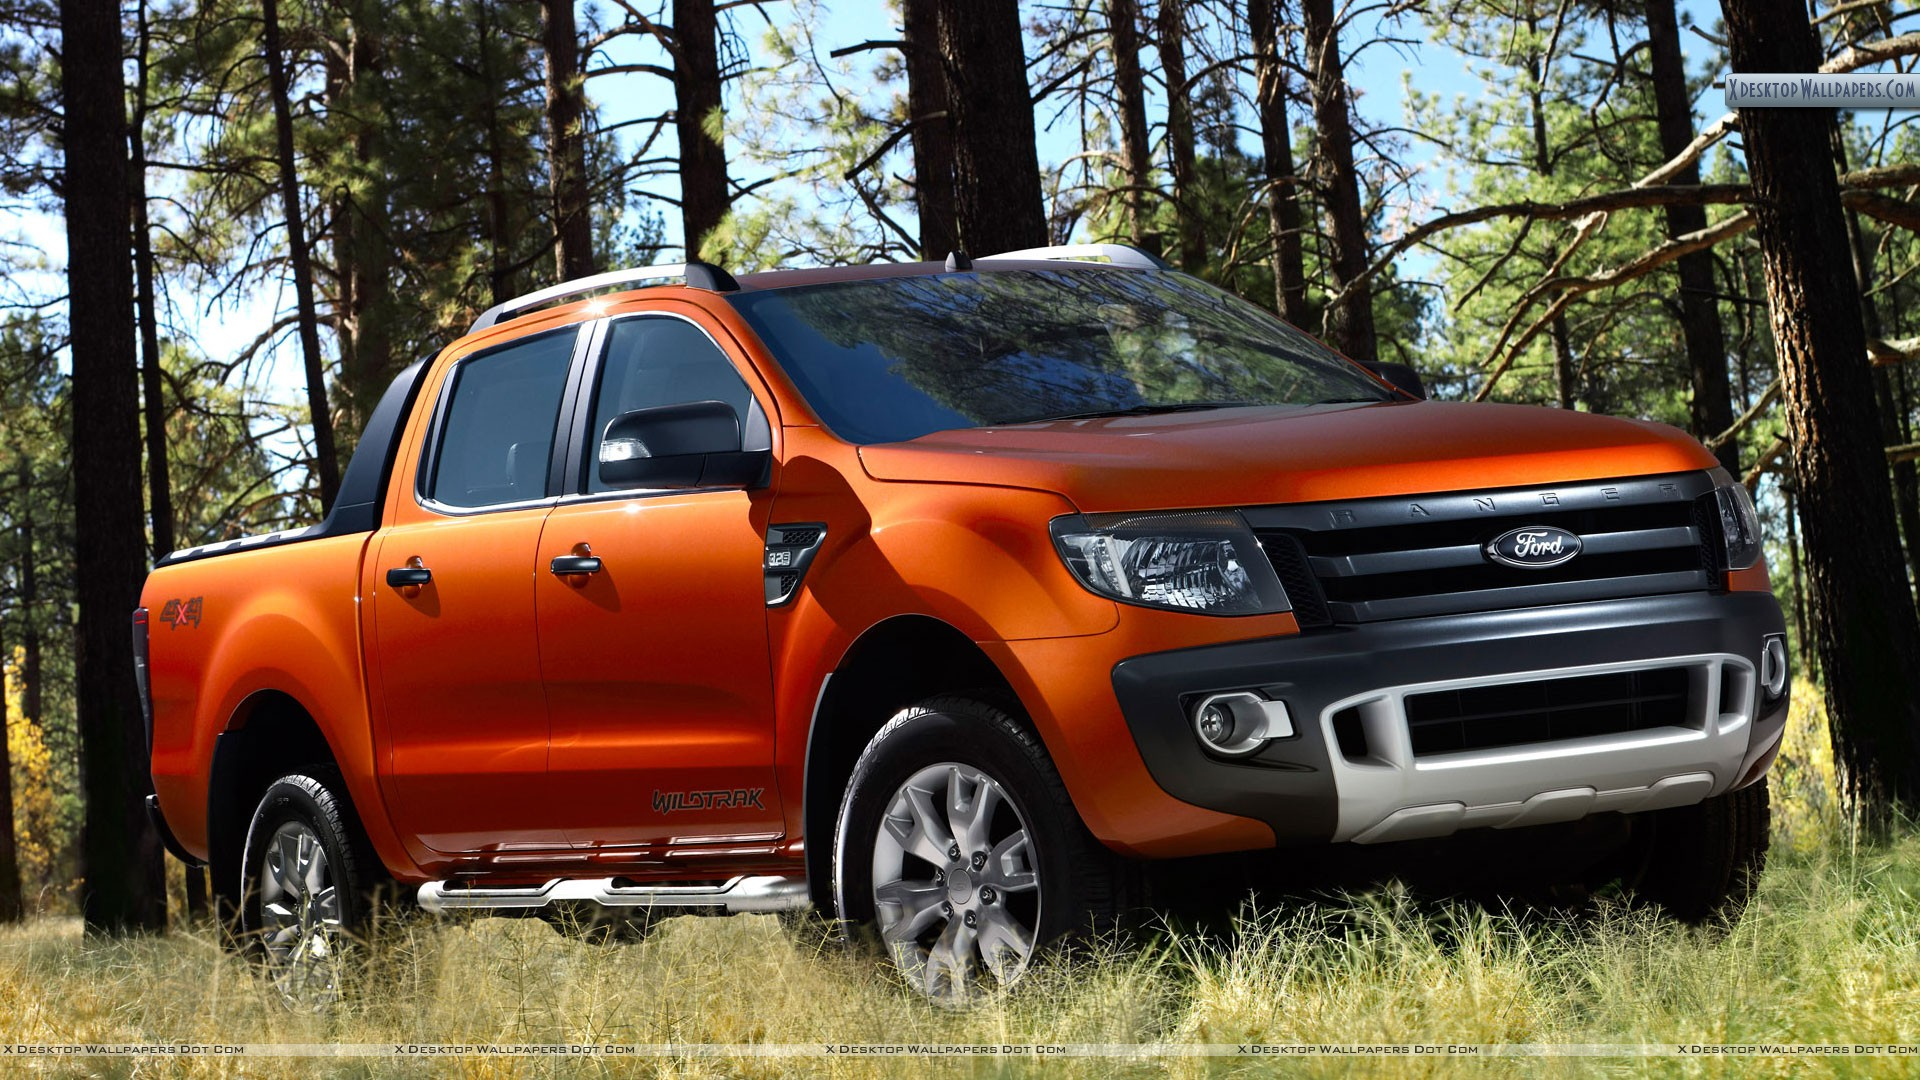 1920x1080 - Ford Ranger Wallpapers 17